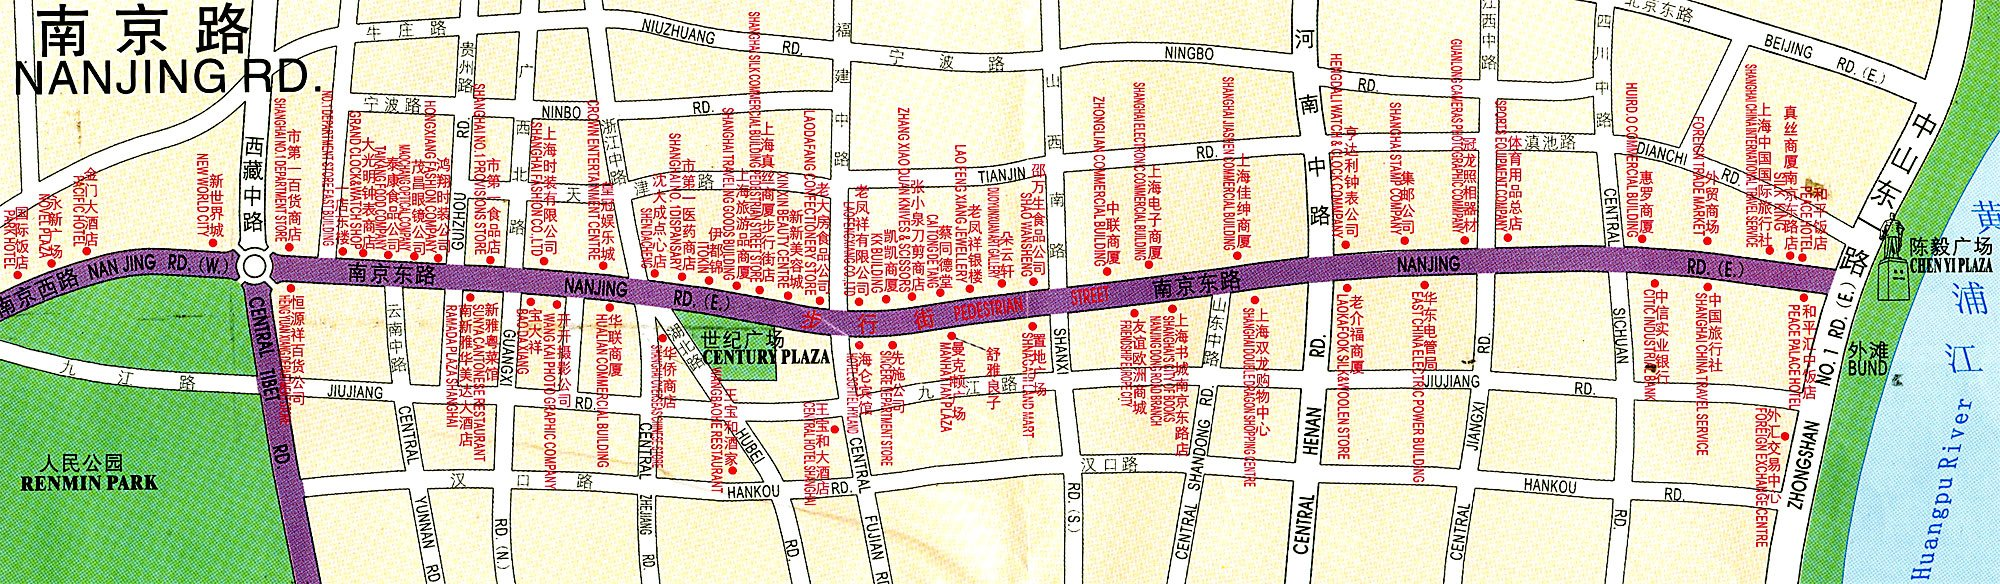 Map of Nanjing Road Shanghai